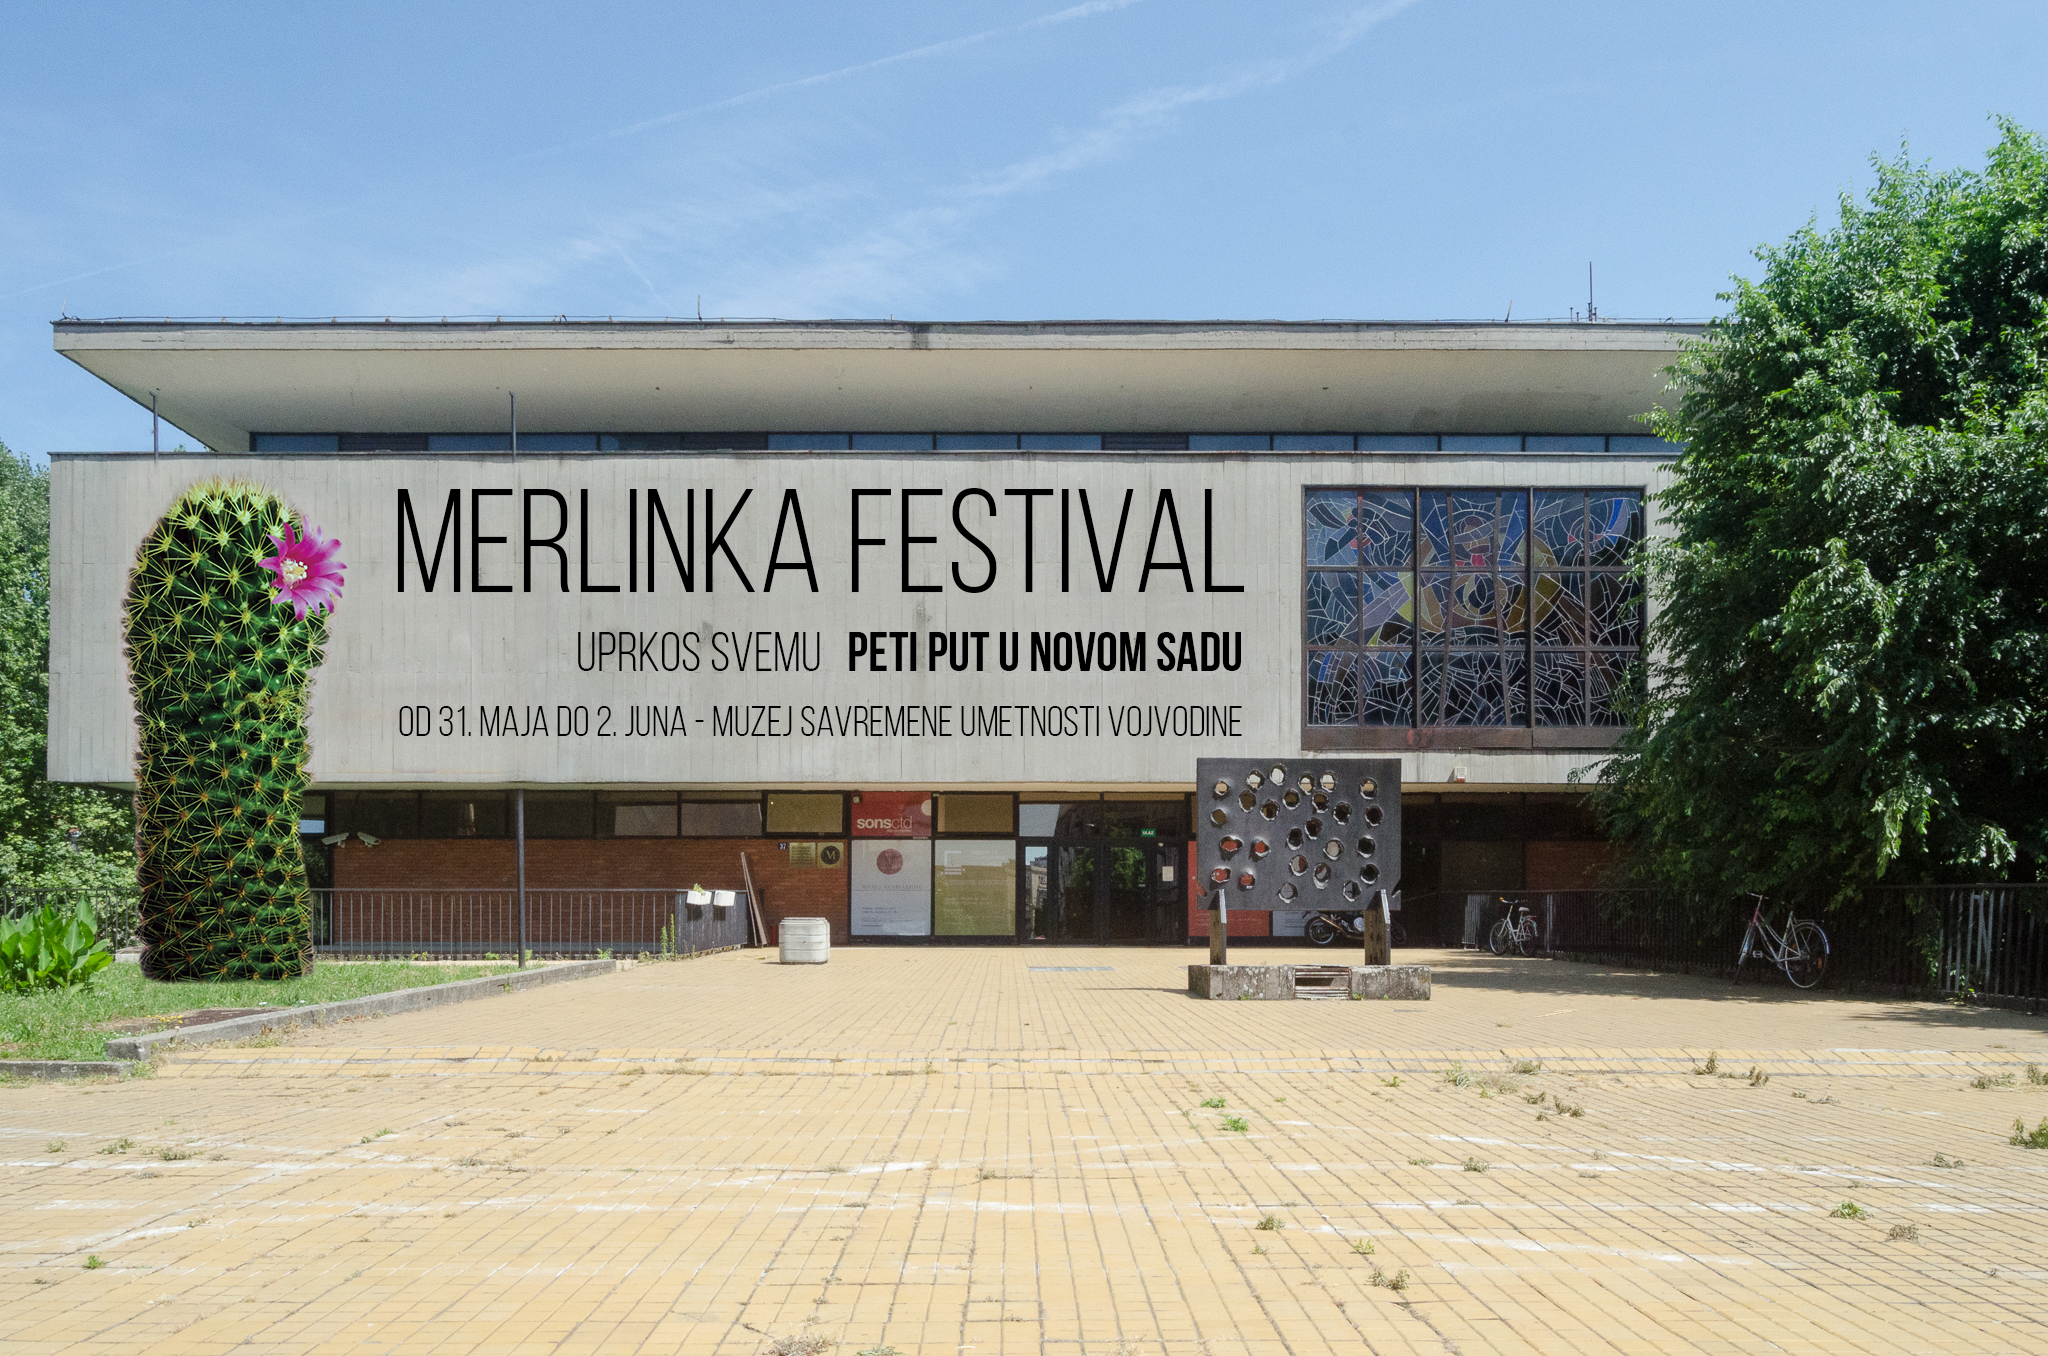 Merlinka festival Novi Sad